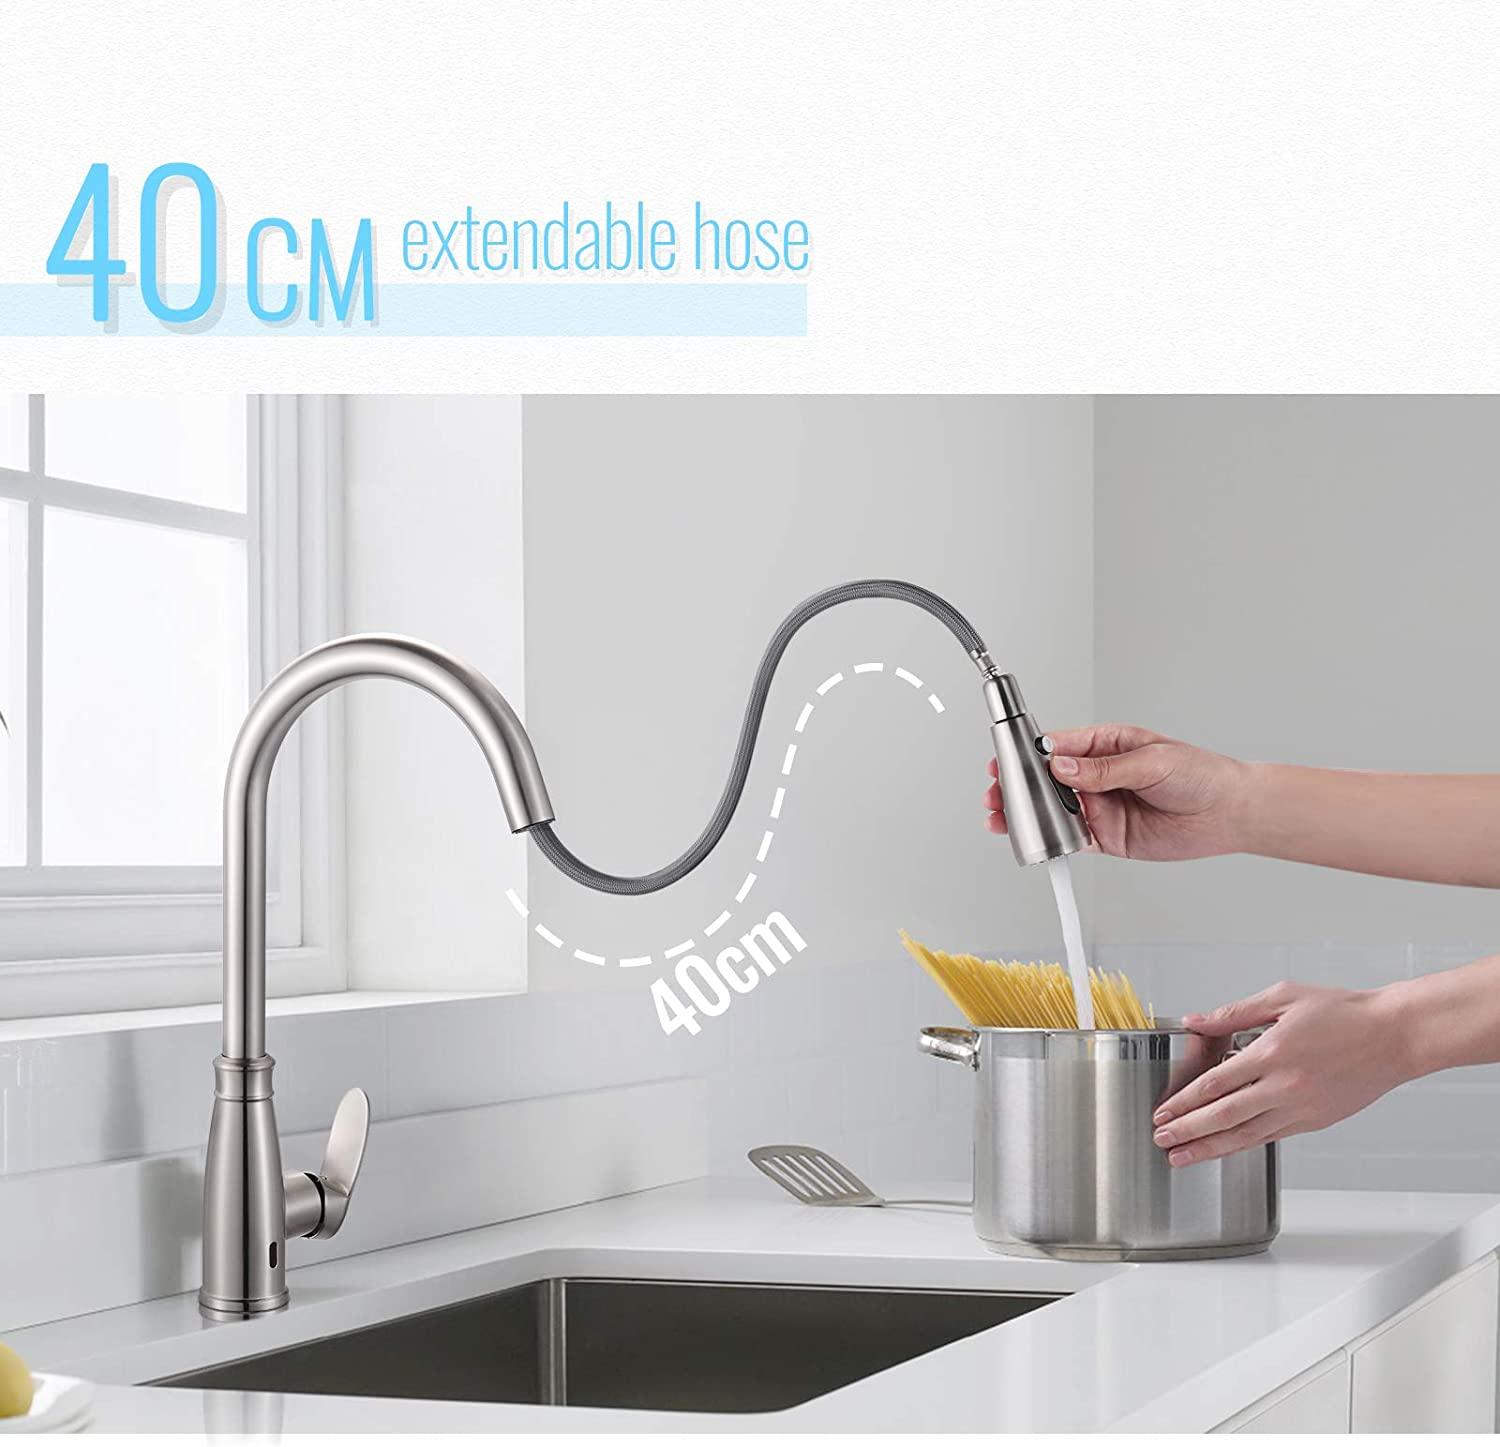 SNAN Single Handle High Arc Automatic Sensor Kitchen Sink Faucet with 3 Modes Brushed Nickel Sensor Sink Faucet SKFS02 Touchless Kitchen Faucet with Pull Down Sprayer